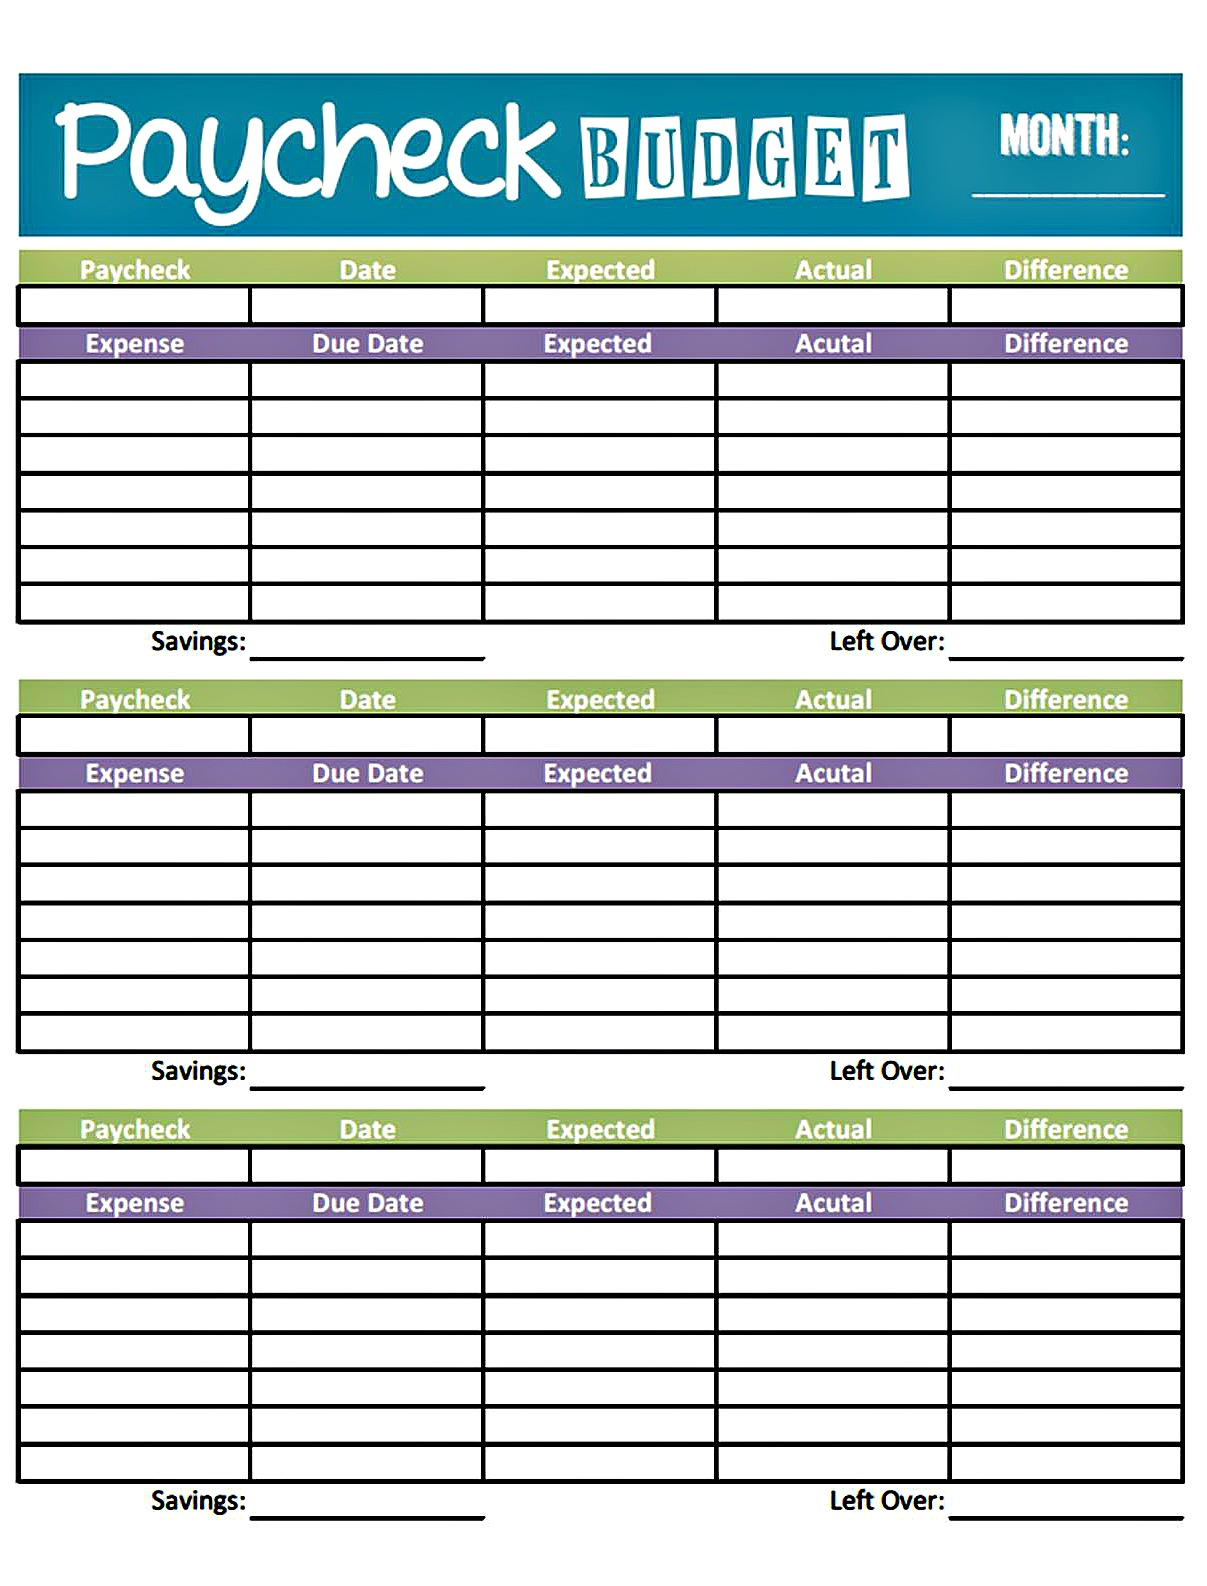 worksheet Monthly Budget Worksheet Pdf 30 budget templates amp worksheets excel pdf template lab get paid weekly and charlie gets bi so there 39 s several